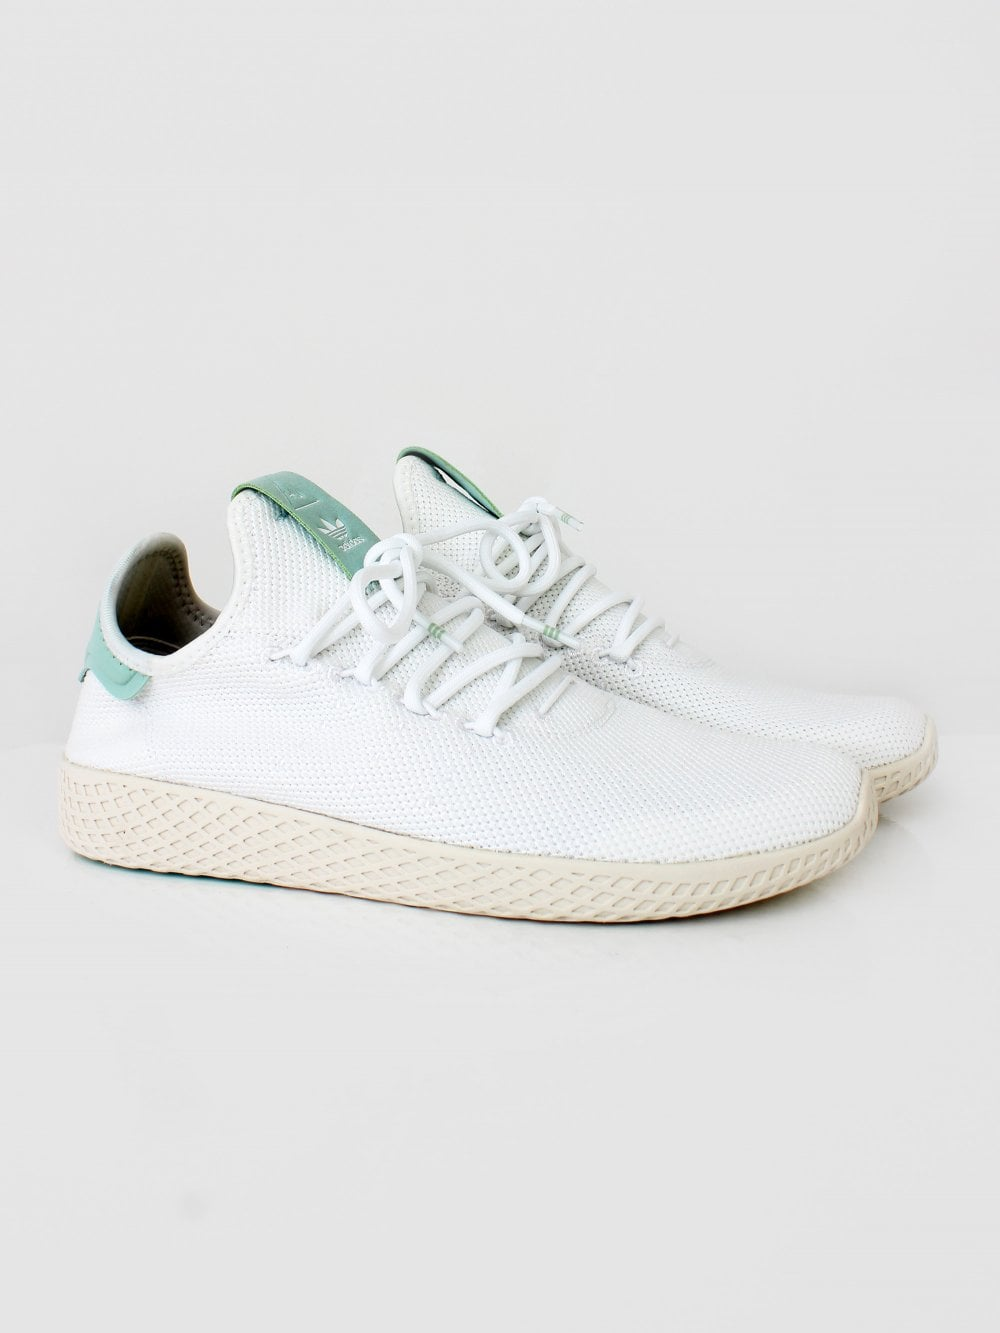 9e3d1be0f3163 Mens adidas Originals Pharrell Williams Tennis HU Trainer - White ...